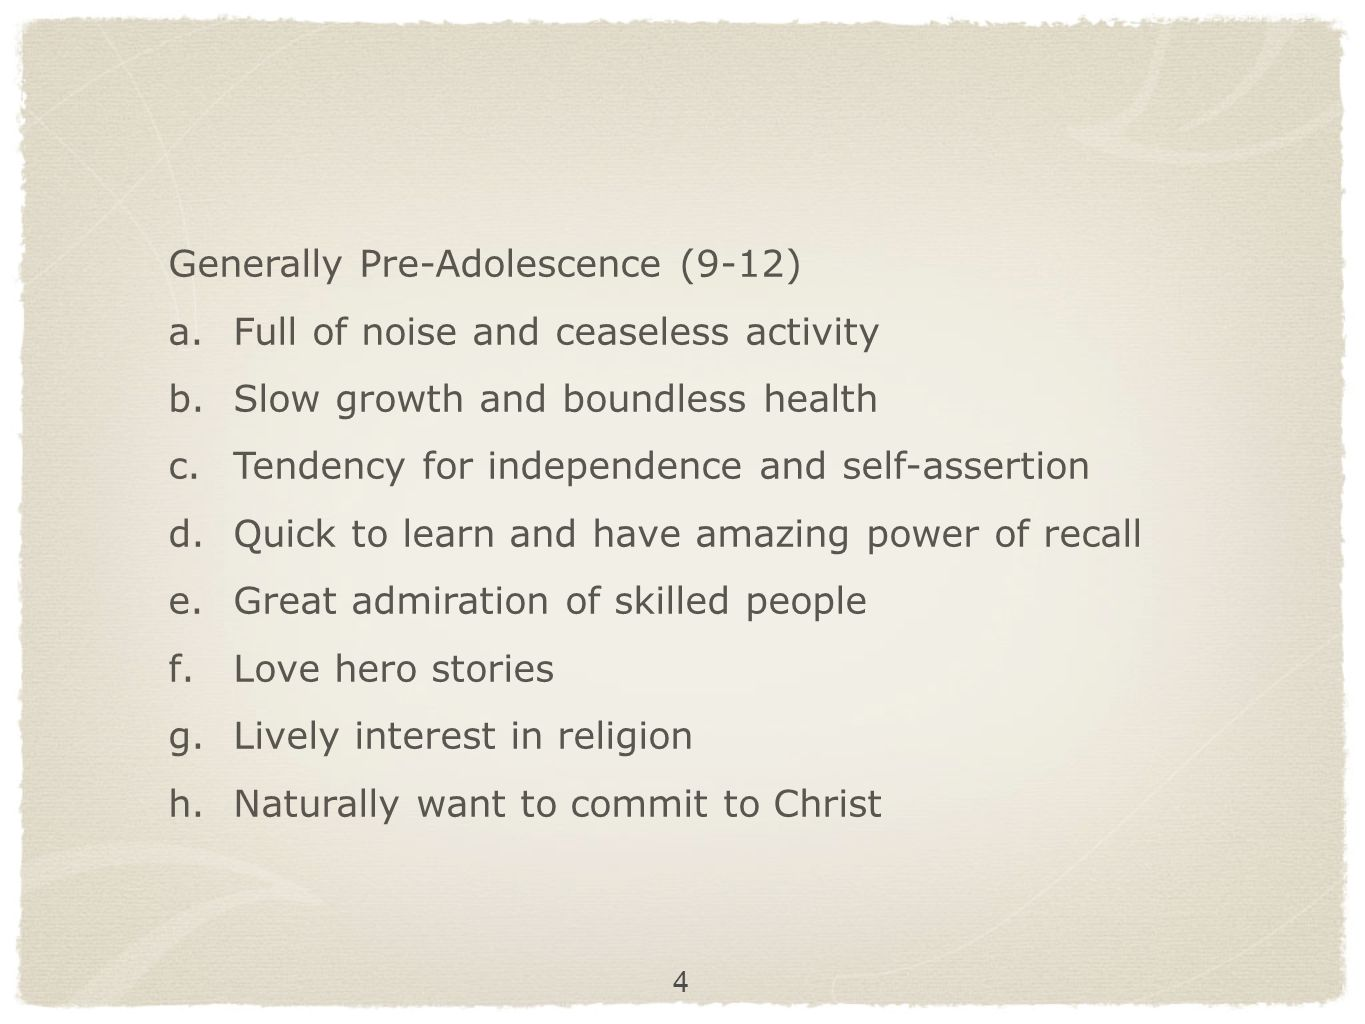 Generally Pre-Adolescence (9-12) Full of noise and ceaseless activity